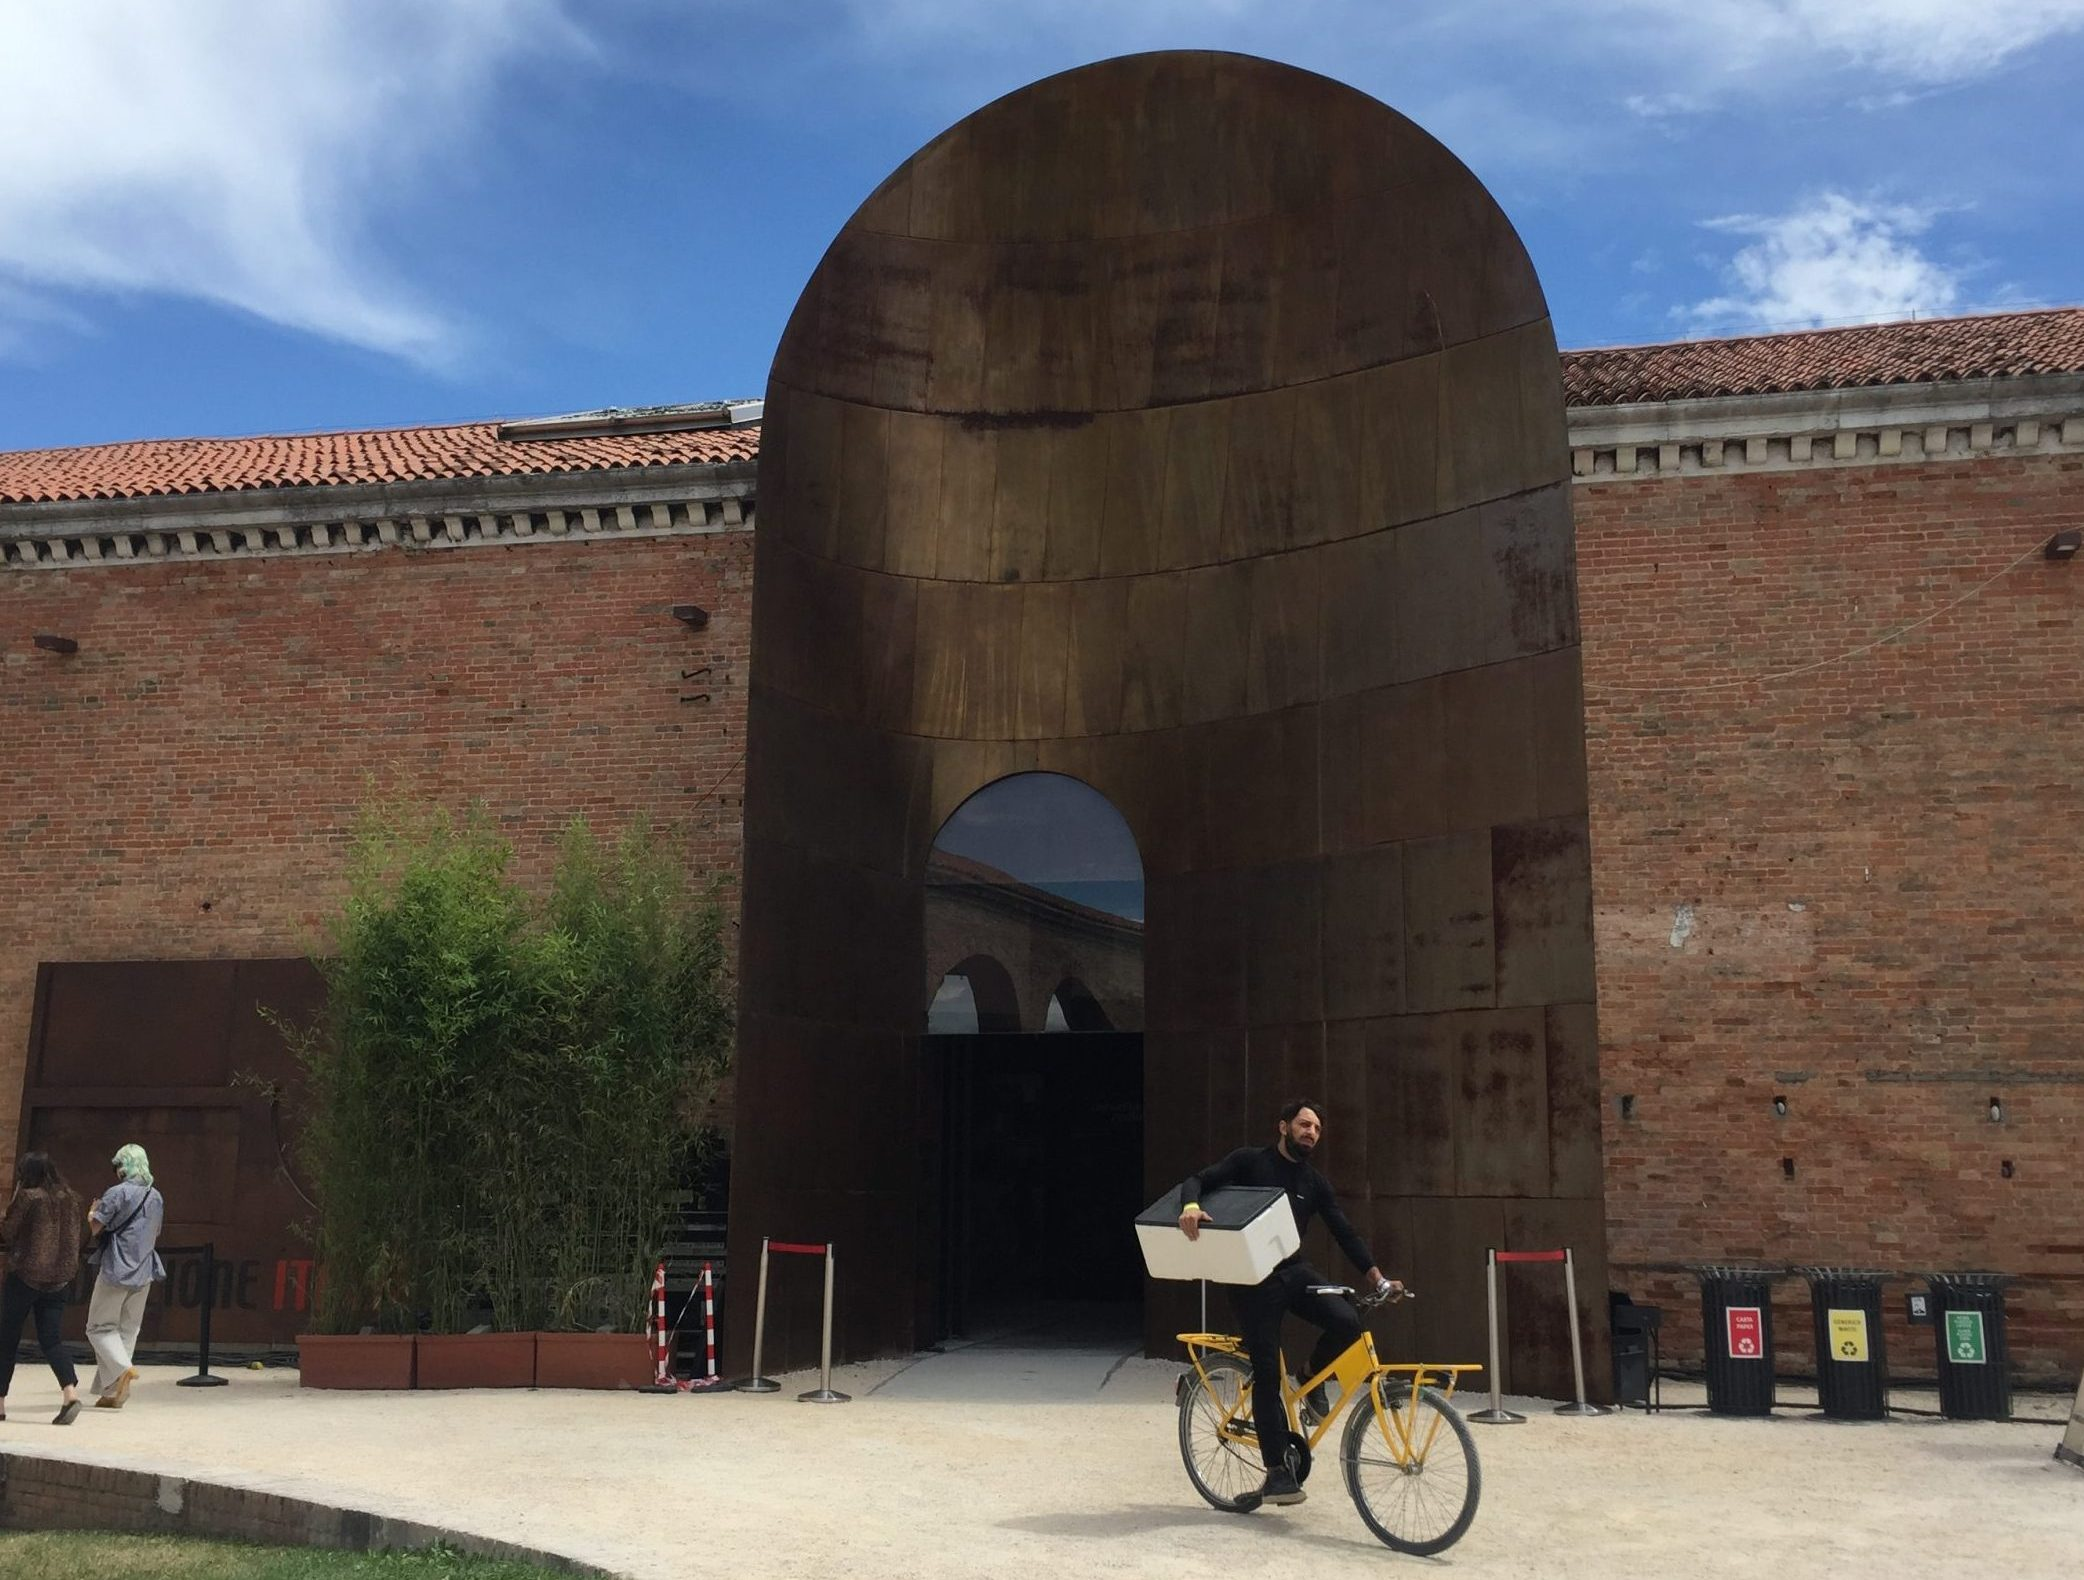 The entrance gate to the Italian pavilion at Venice Arsenale, designed by Cino Zucchi